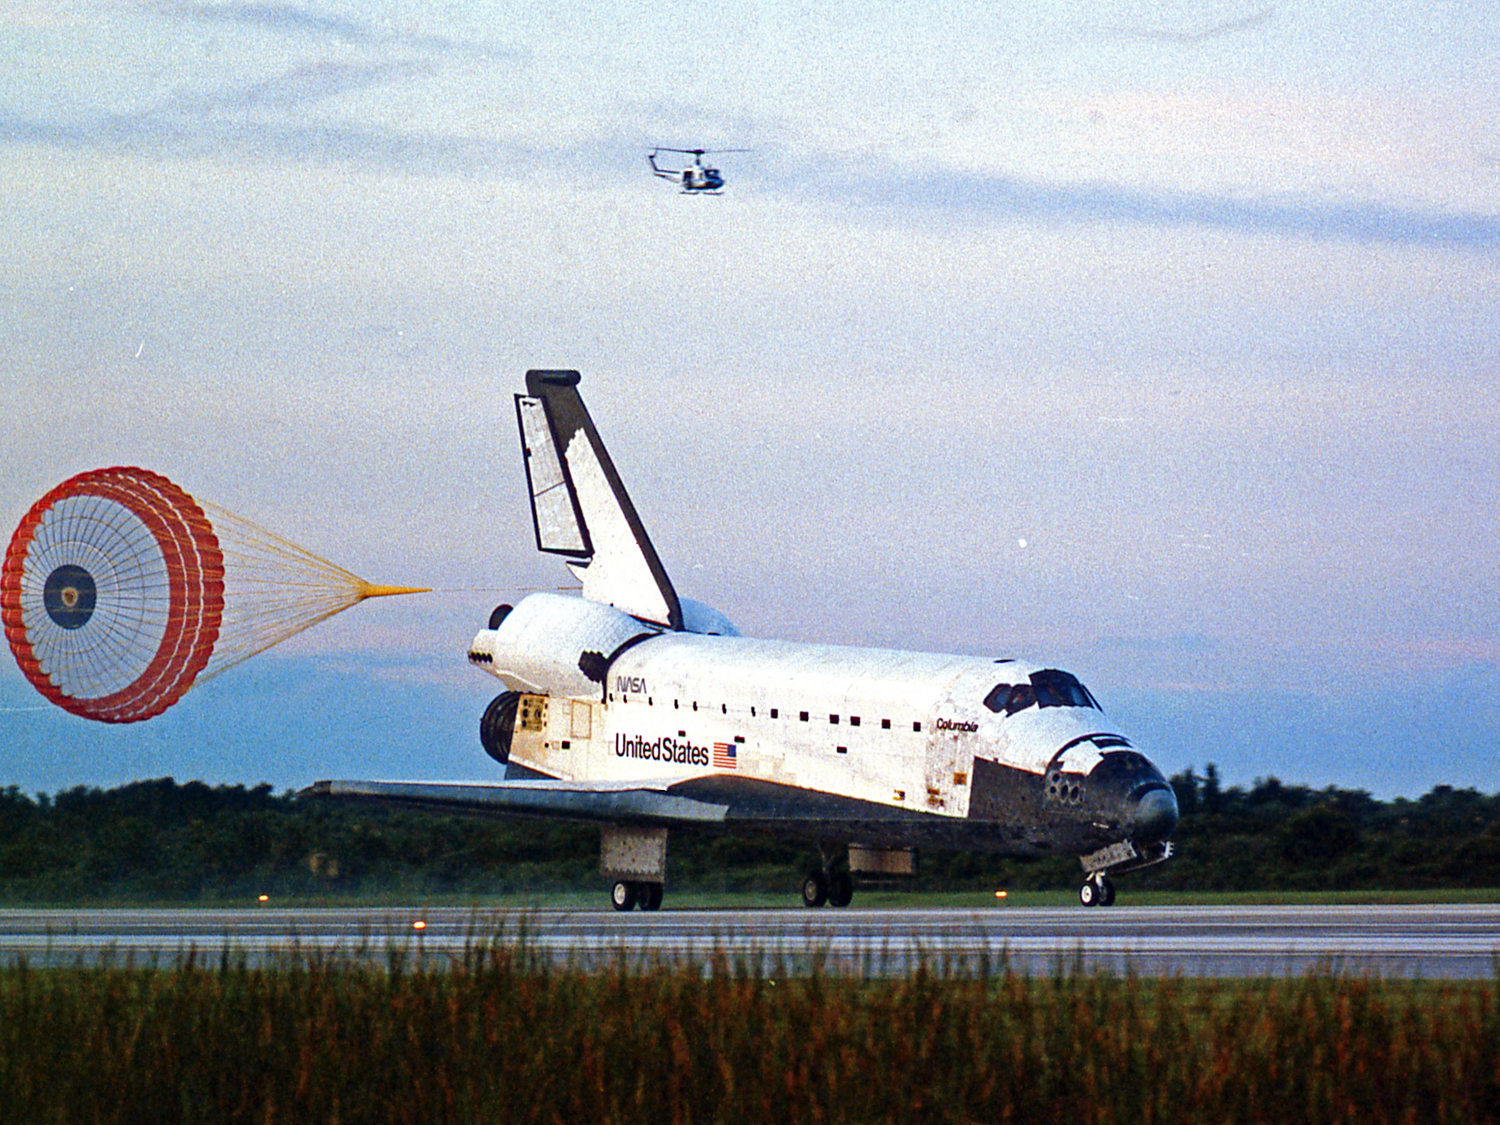 Landing of Columbia at KSC on July 23, 1994.